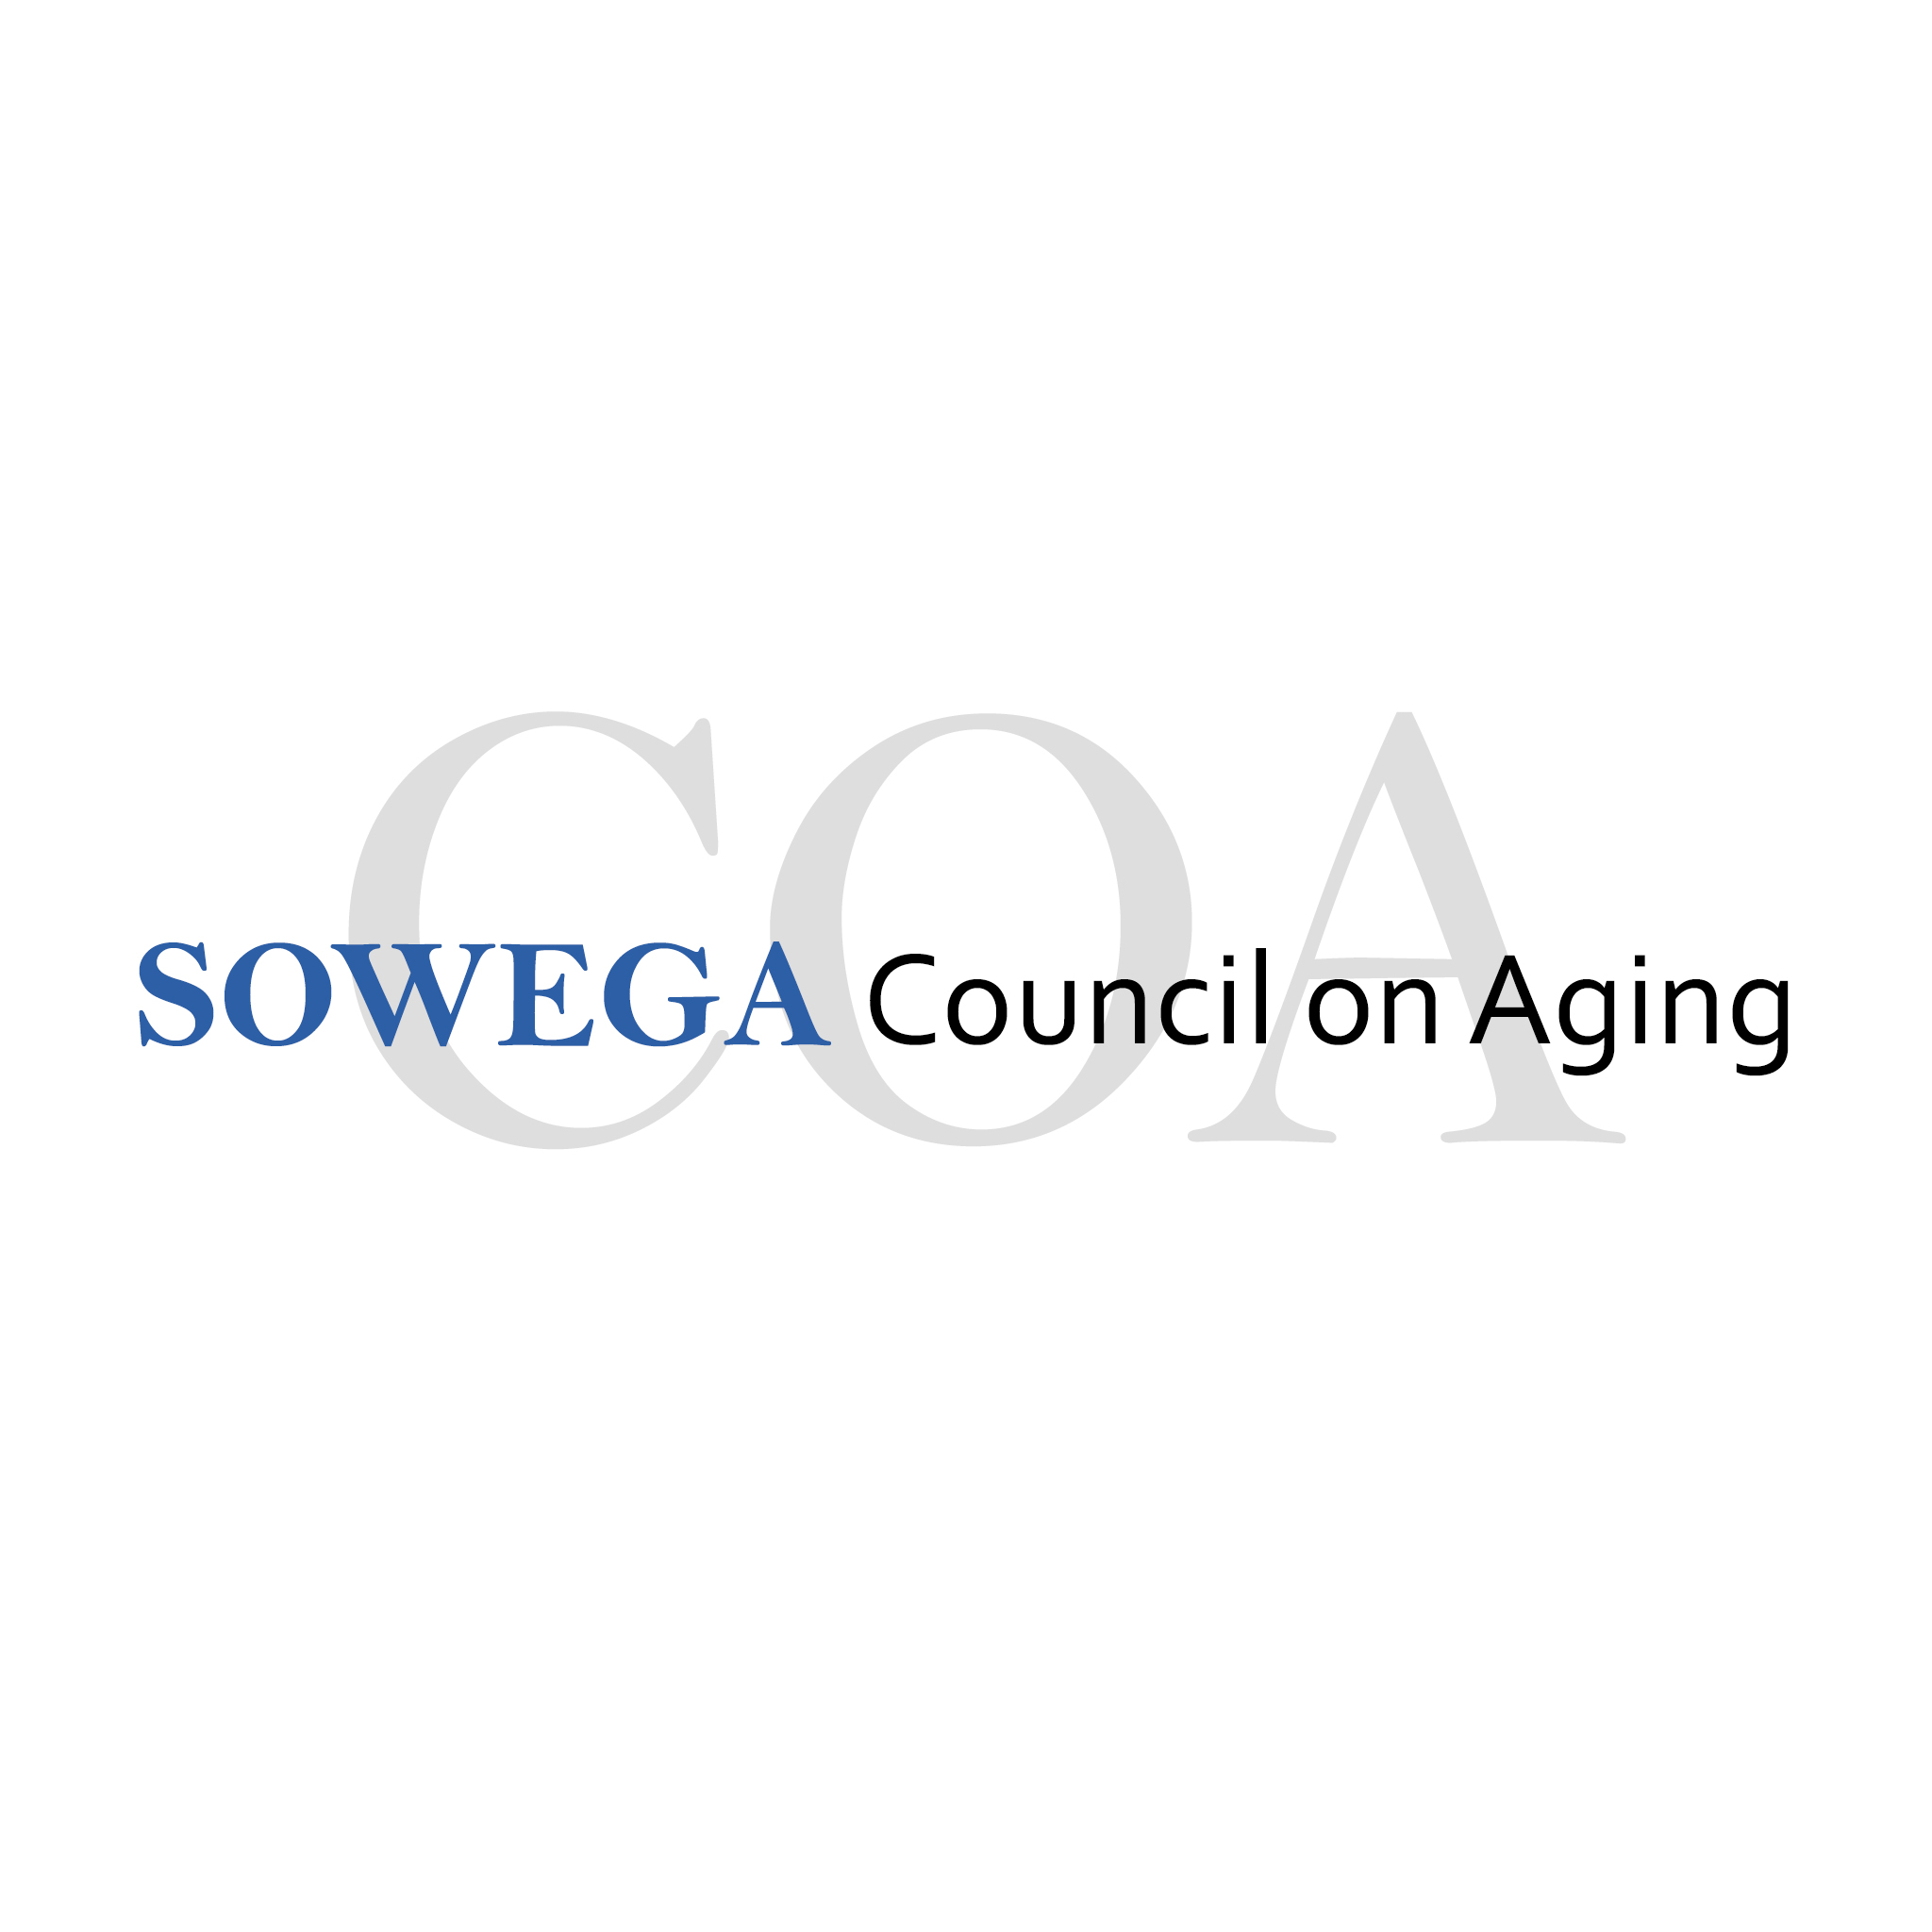 SOWEGA COUNCIL ON AGING